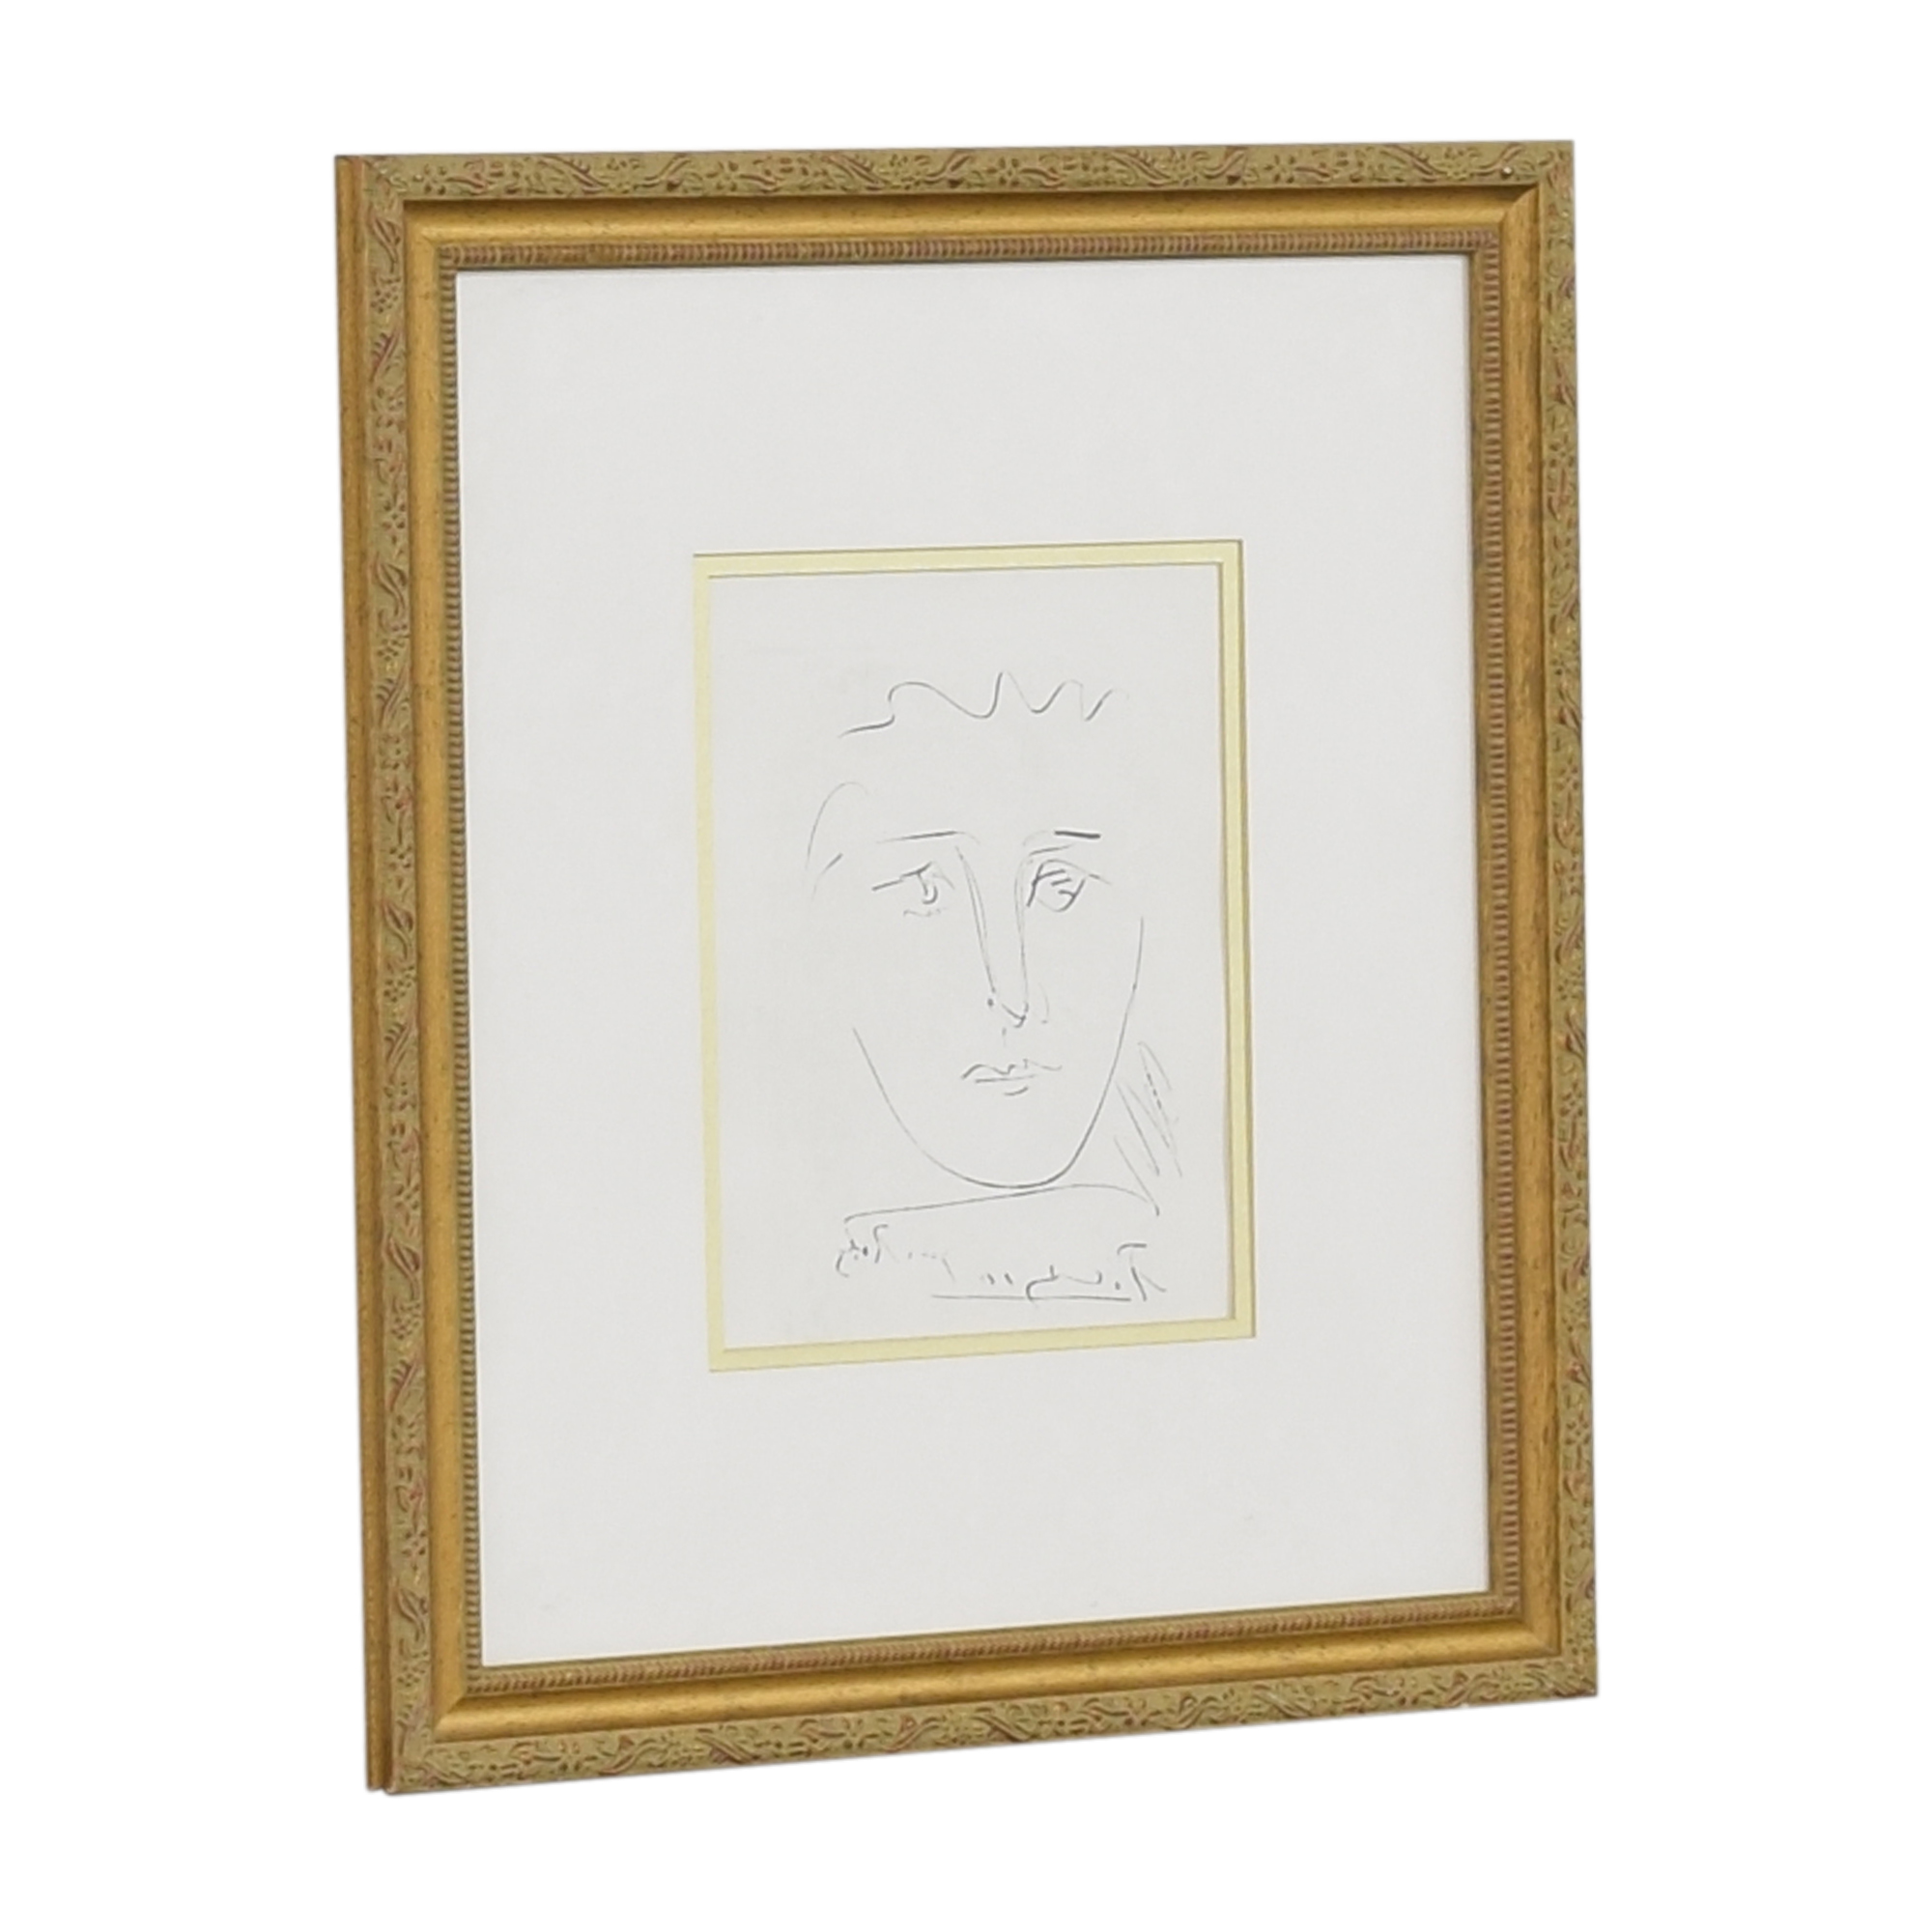 Ross Galleries Ross Galleries Framed Picasso Pour Robe Print Wall Art for sale